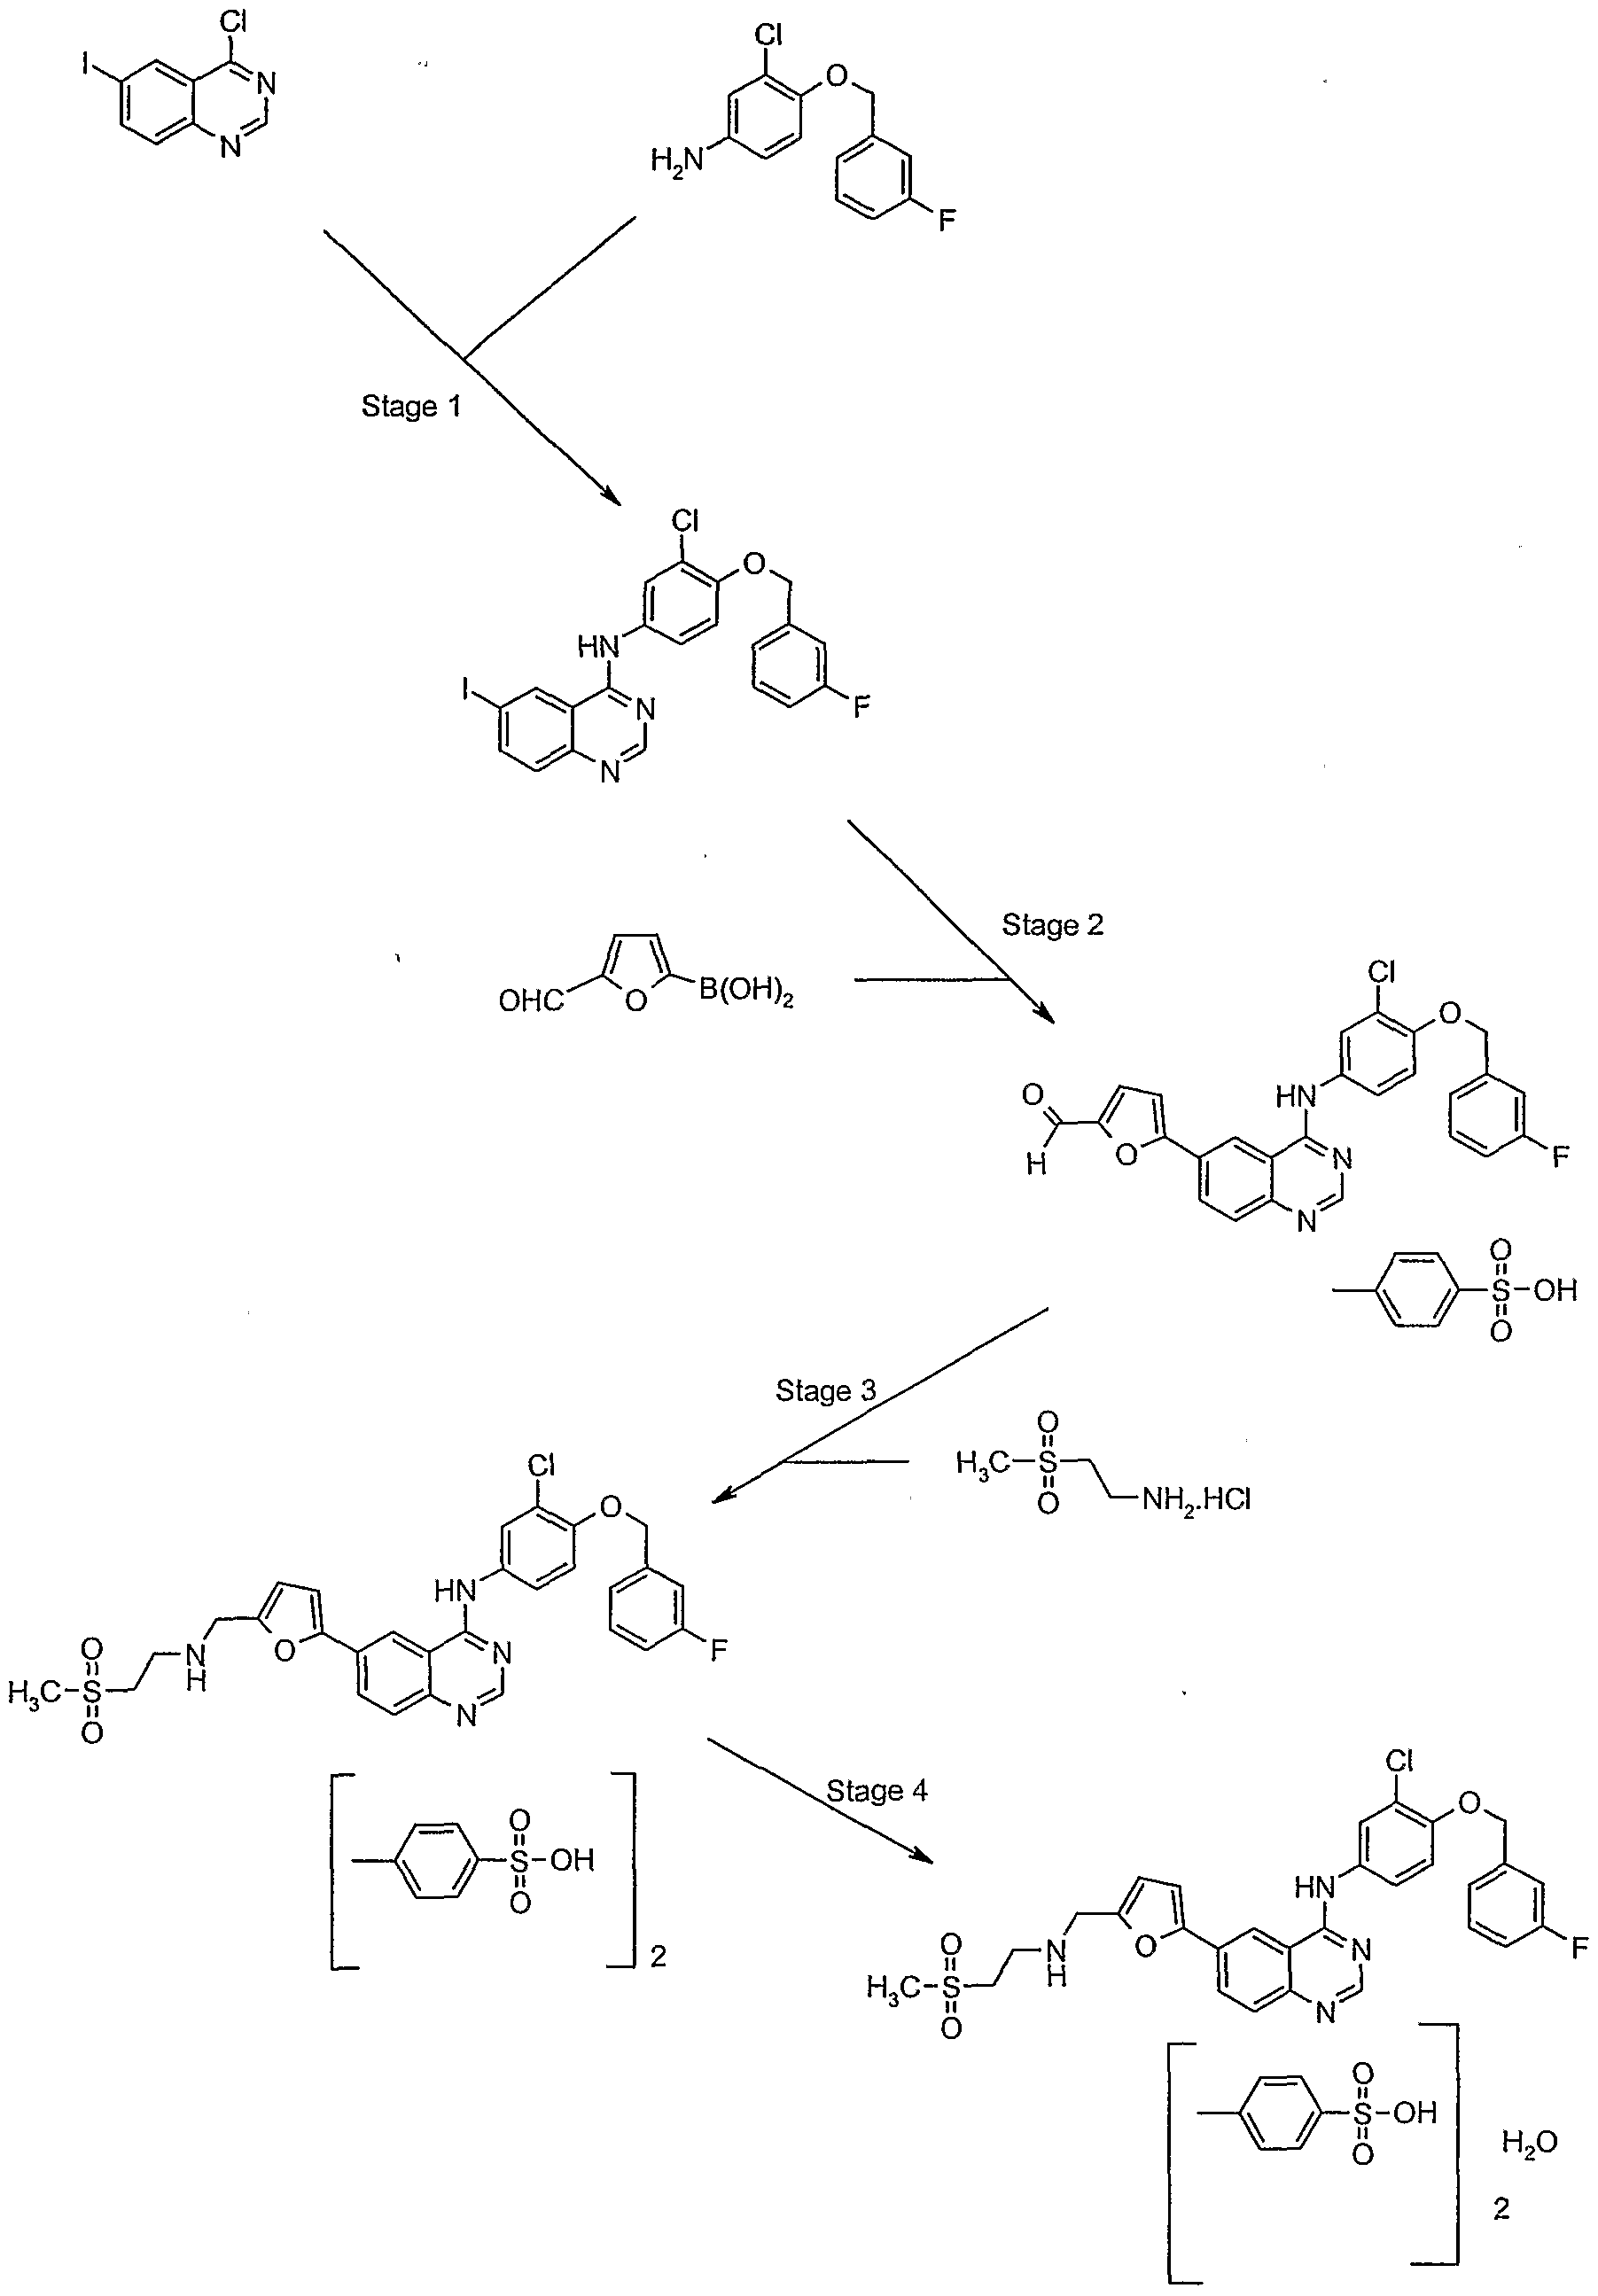 wo2006061253a2 bination of tyrosine kinase inhibitor and her 2 Ohio Electrical Products figure imgf000049 0001